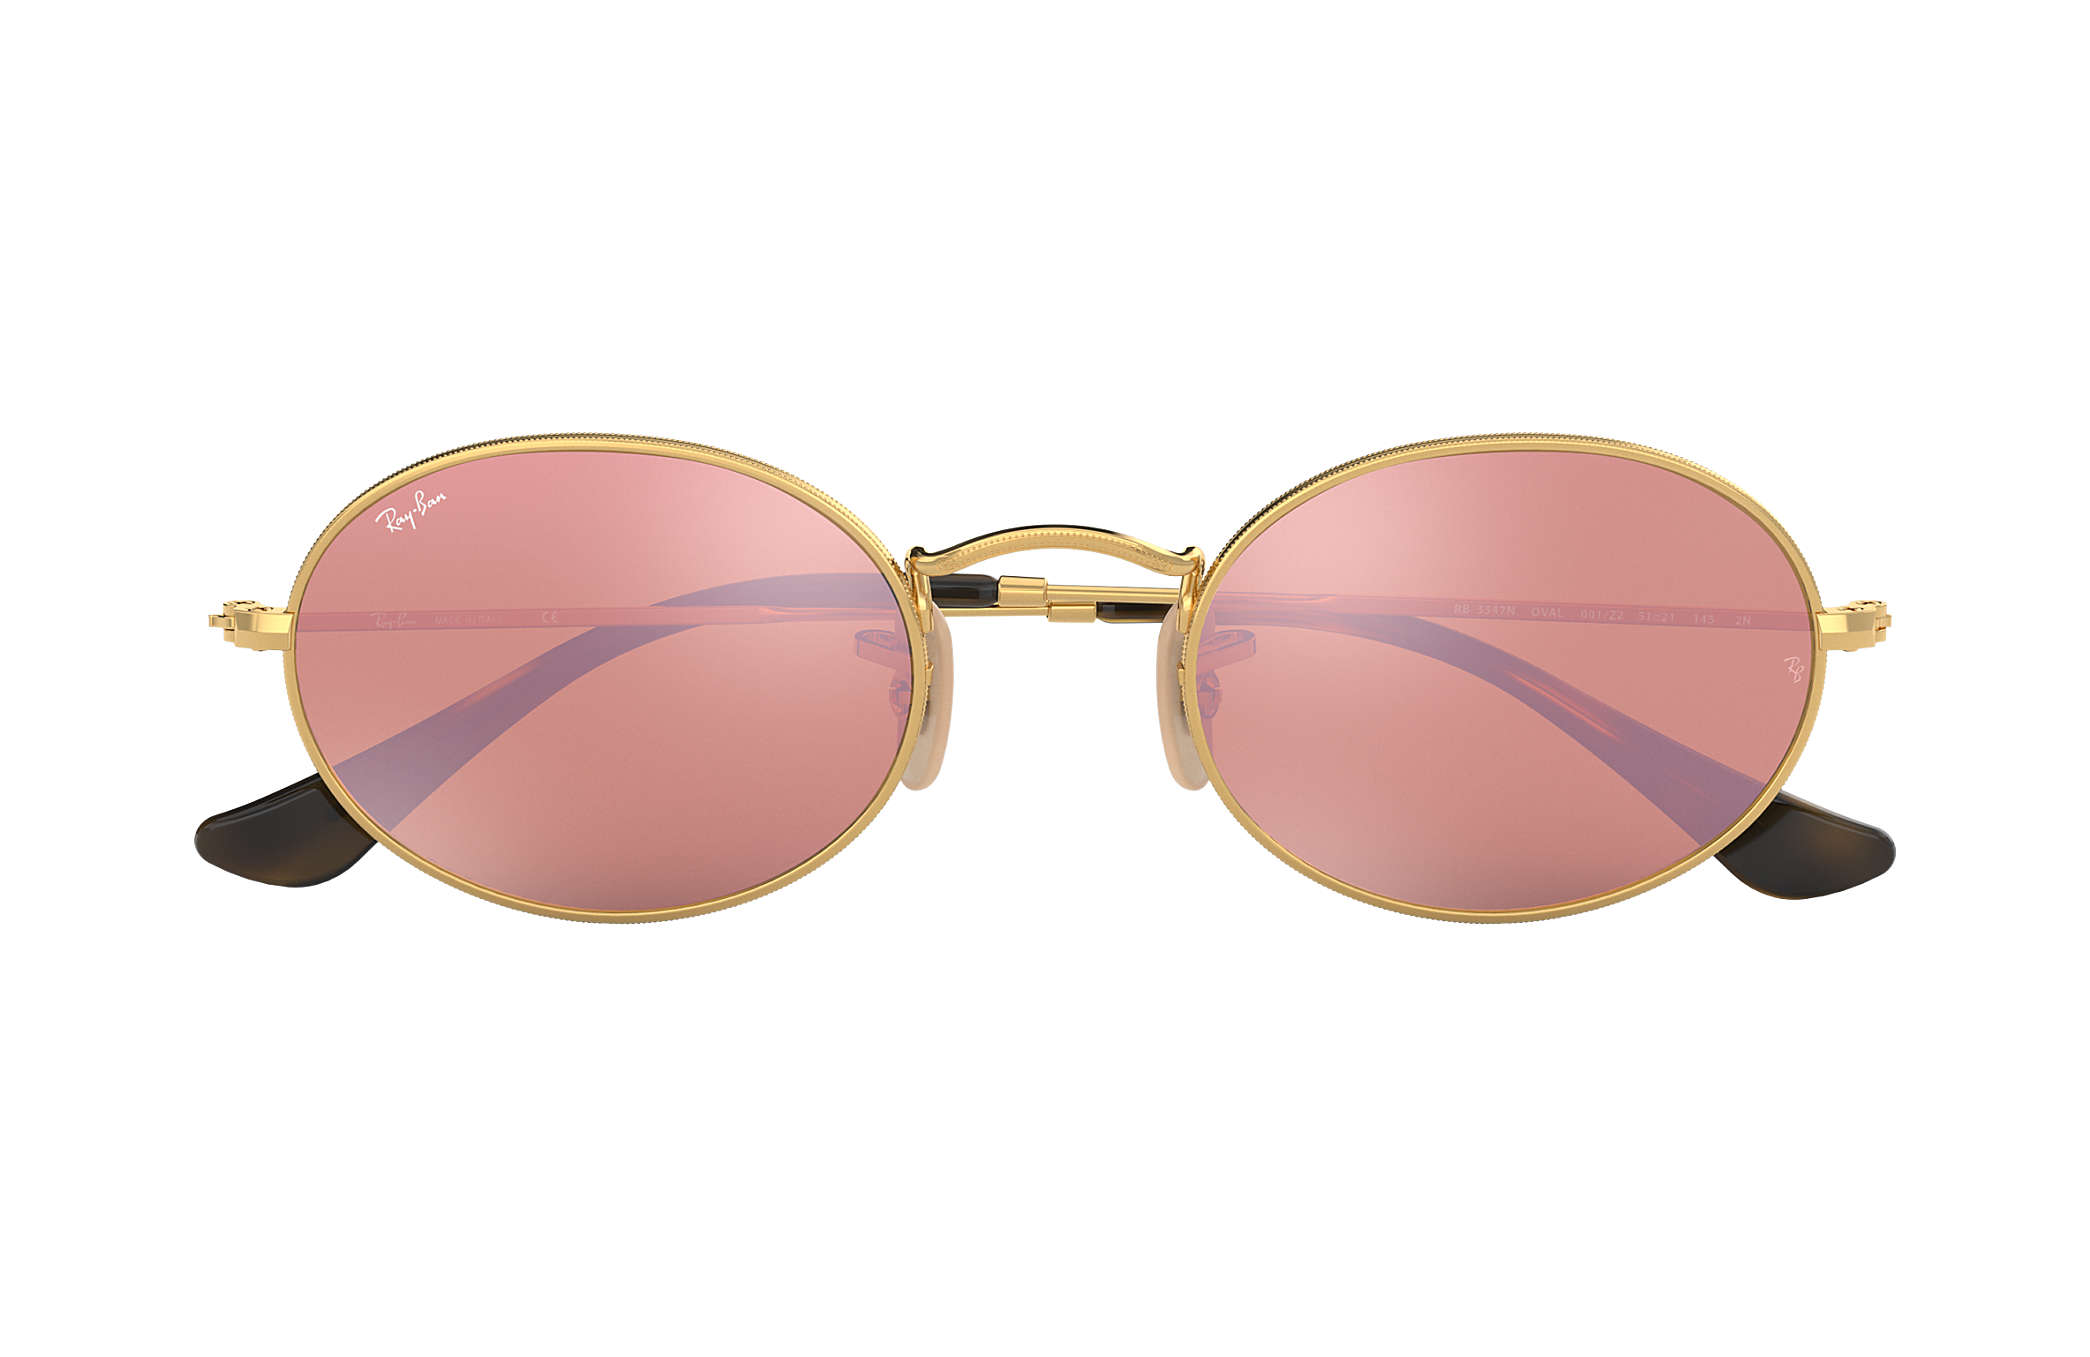 bb53a50b96ce53 Ray-Ban Oval Flat Lenses RB3547N Gold - Metal - Copper Lenses ...